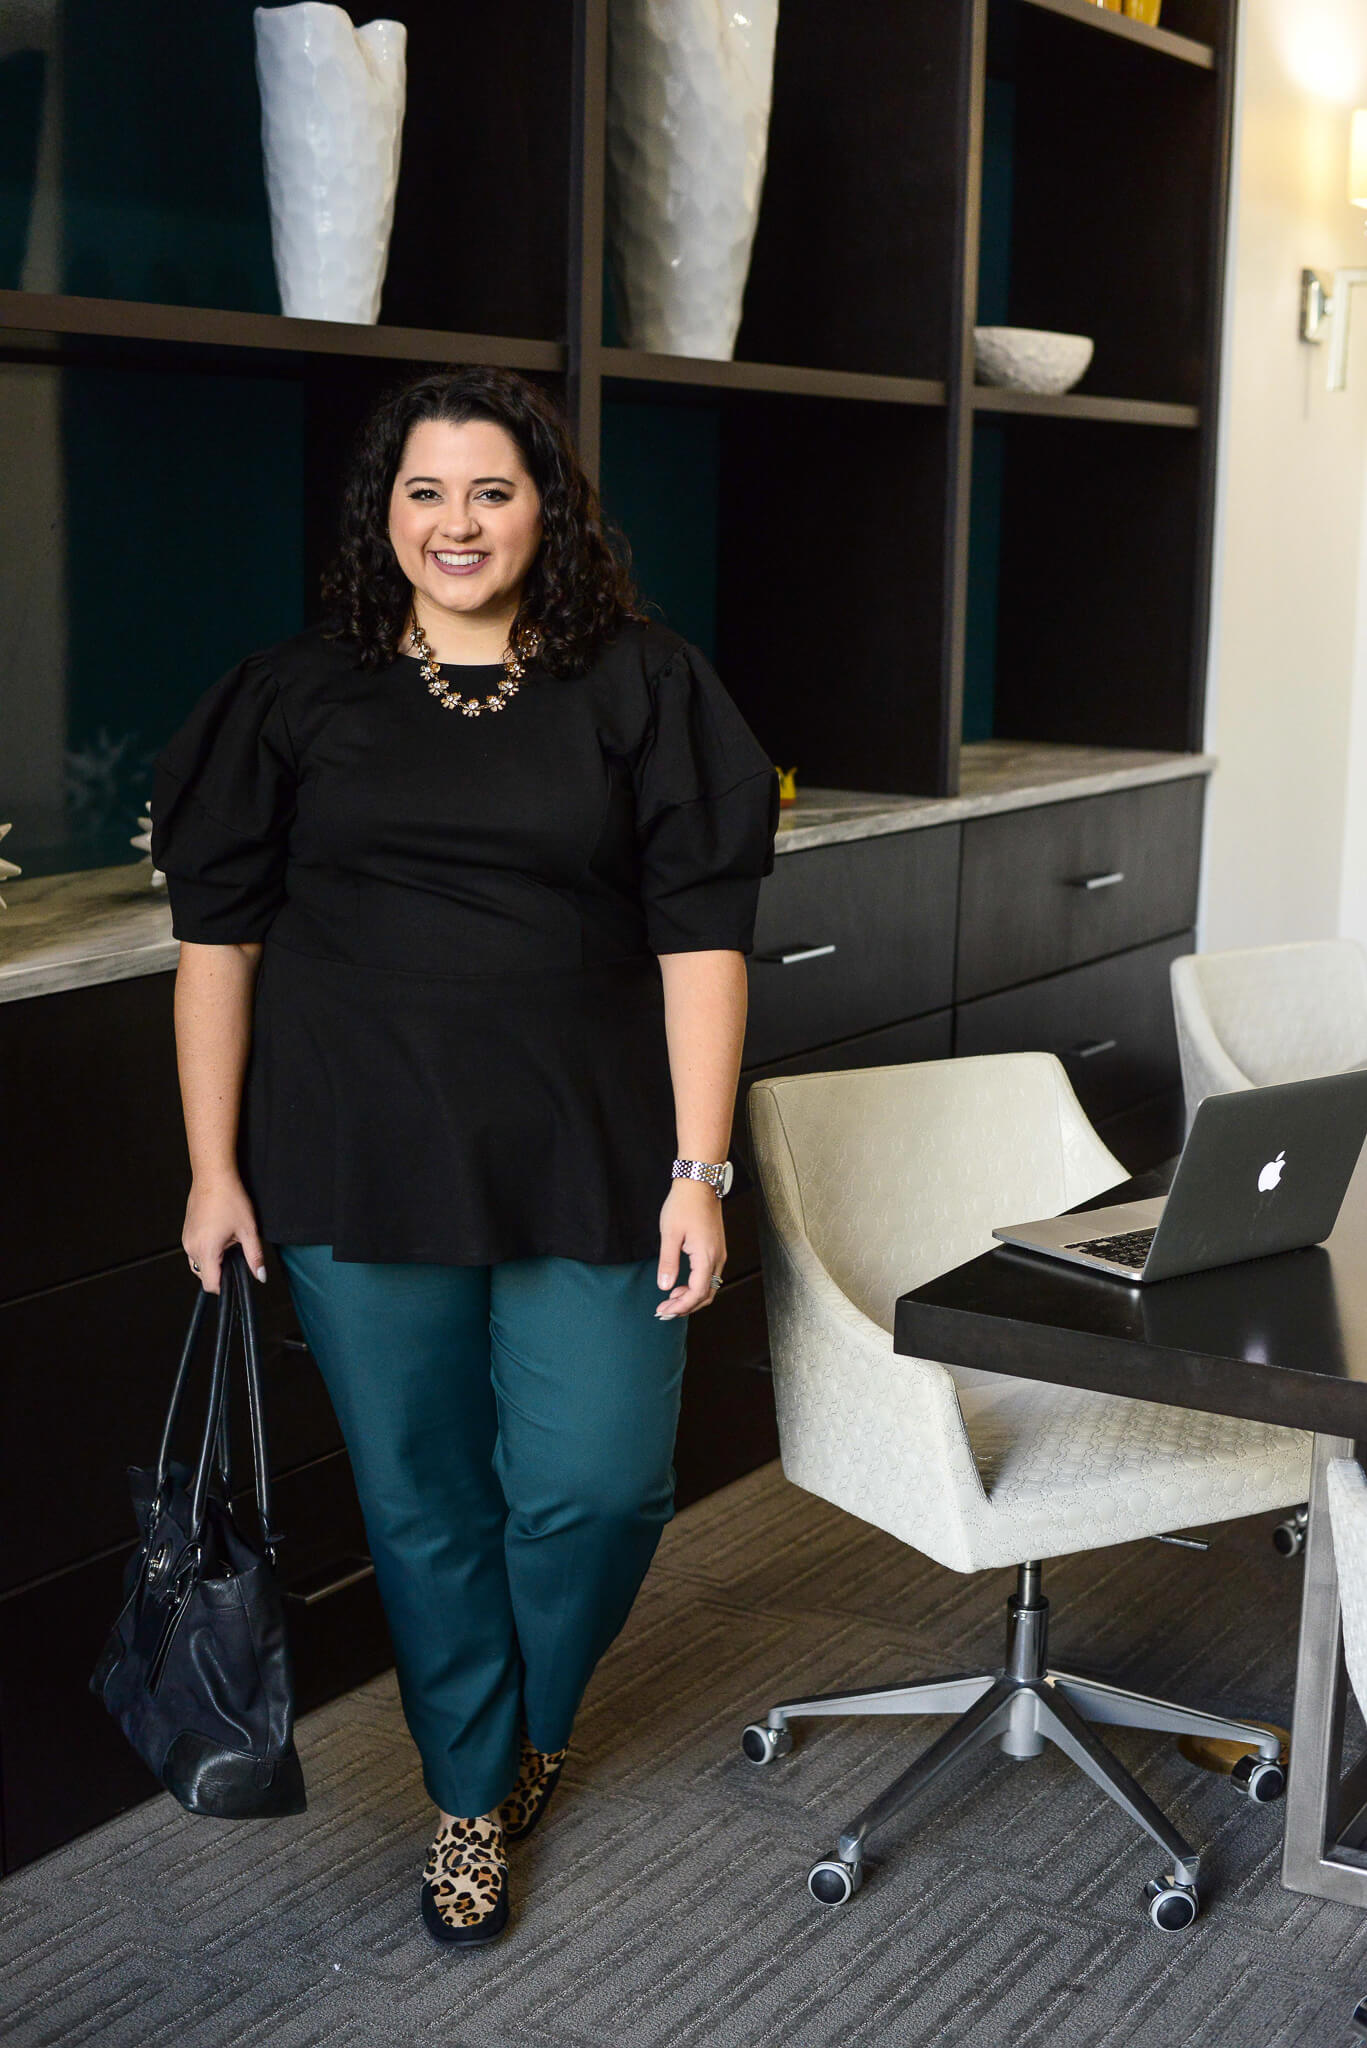 When you're working 12+ hour days, having a comfortable outfit is crucial to getting everything done without getting annoyed. Today, I'm sharing my favorite plus size work pant perfect for a business casual or business formal environment.